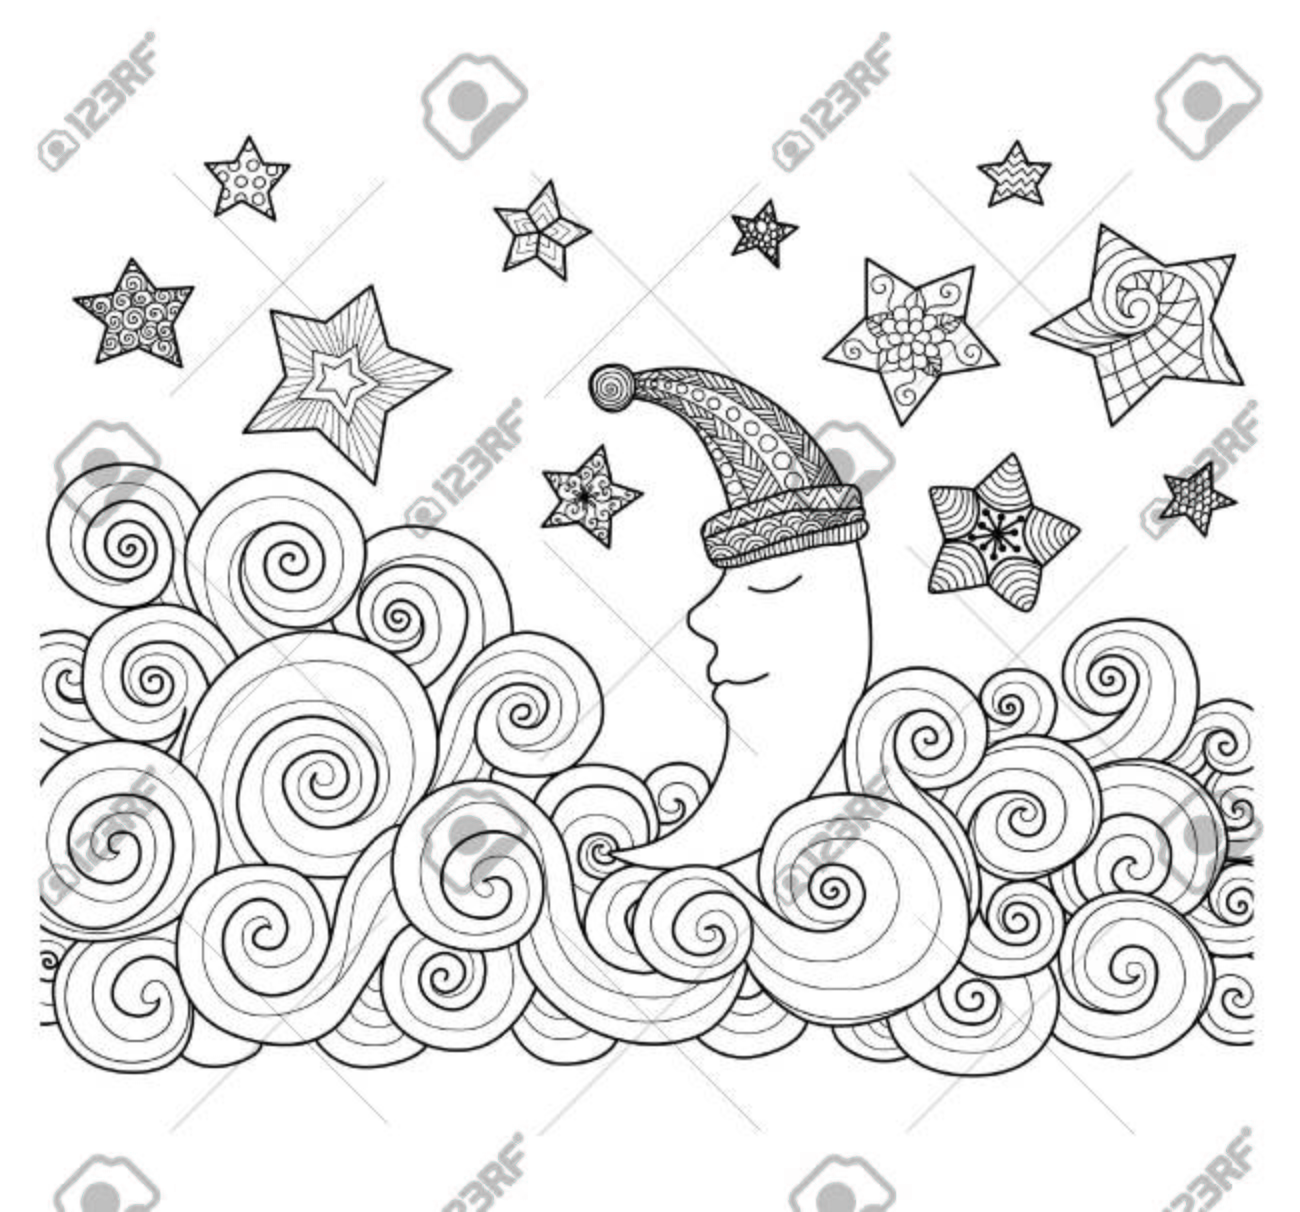 Sleeping Moon With Stars Zentangle Design For Coloring Book For ...